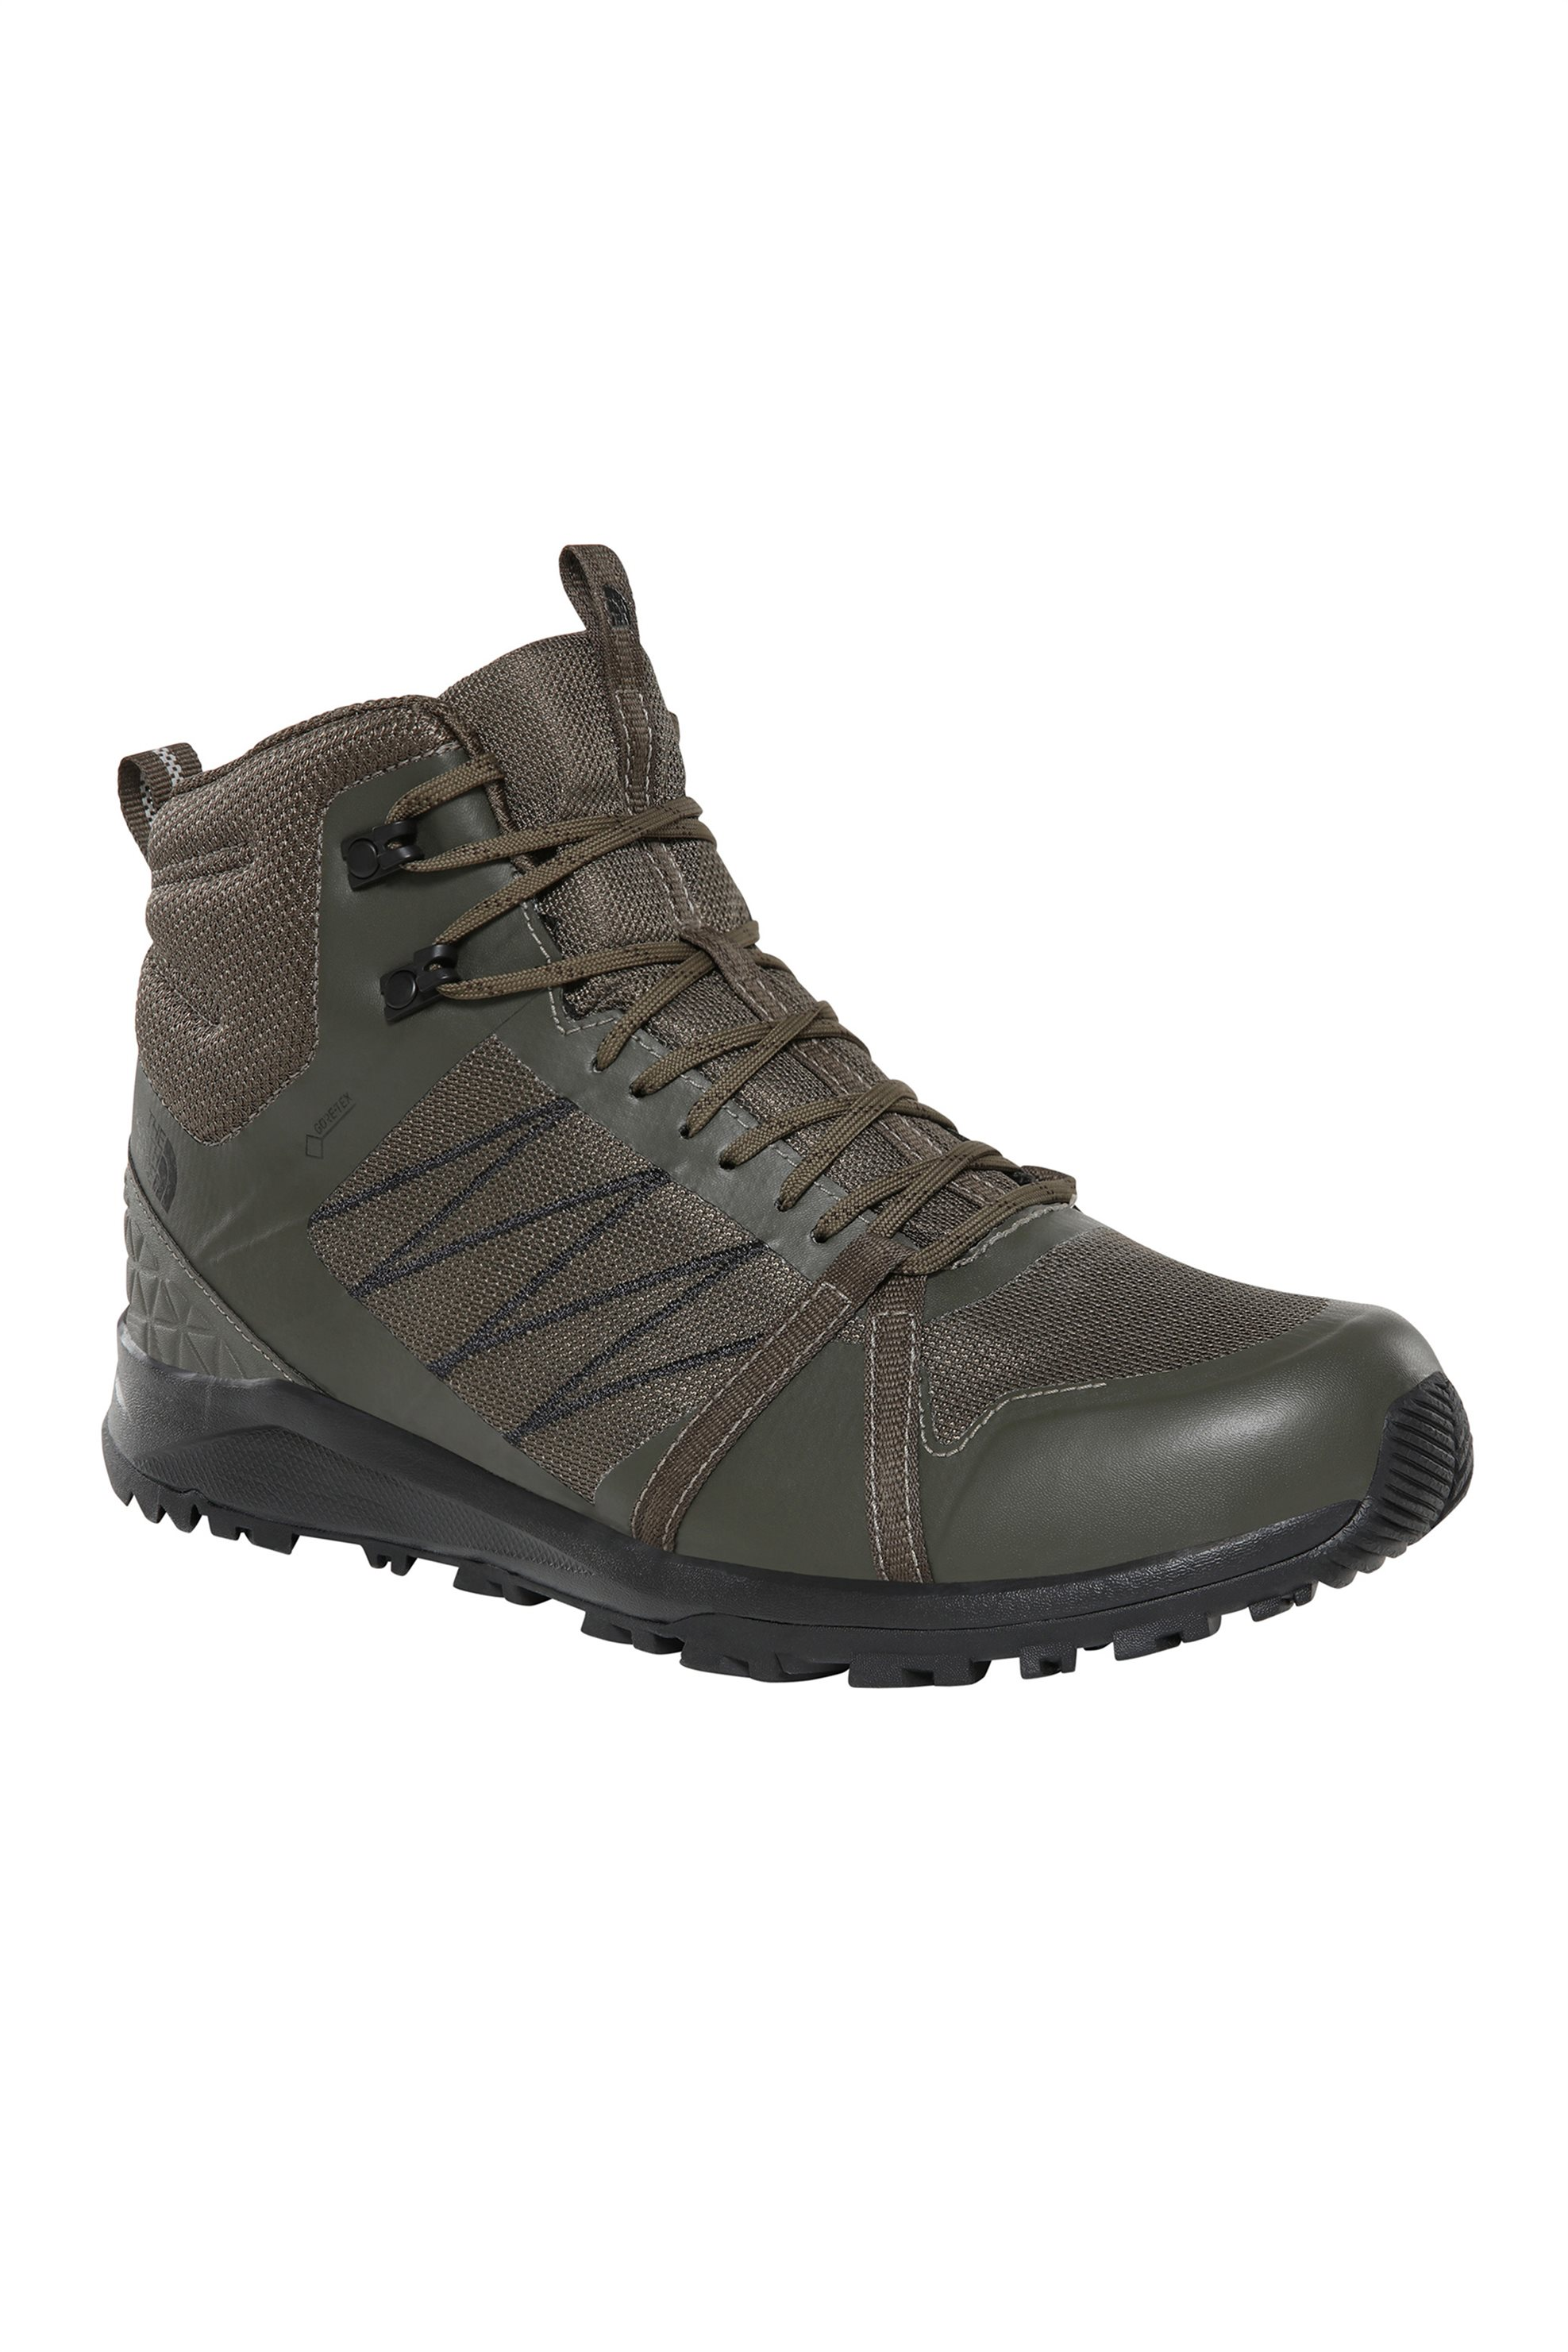 The North Face ανδρικά μποτάκια Litewave Fastpack II Mid GORE-TEX® – NF0A3REBBQW1 – Λαδί